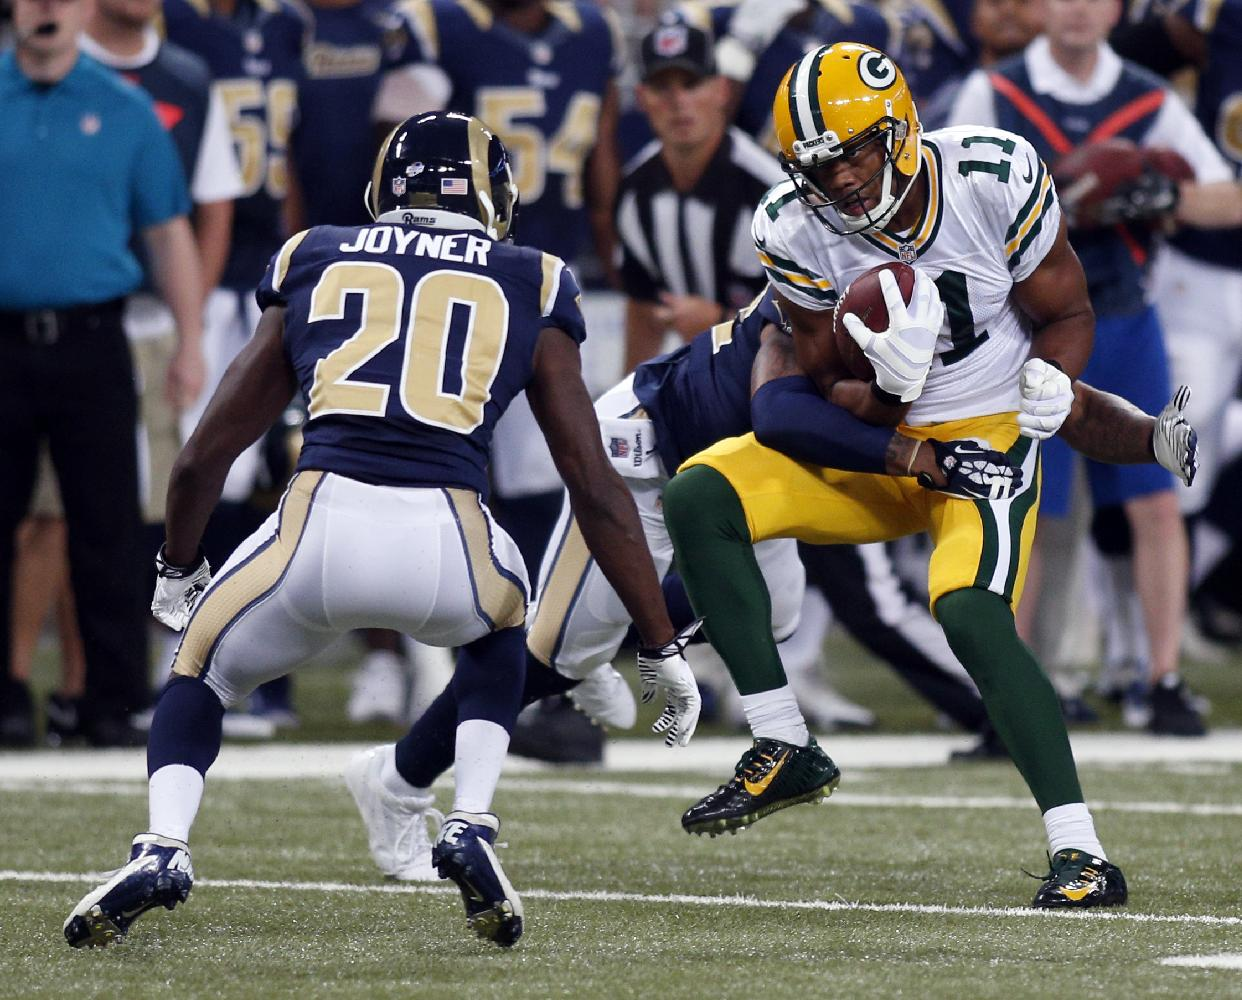 Green Bay Packers wide receiver Jarrett Boykin, right, catches a pass for a 7-yard gain as St. Louis Rams cornerback Lamarcus Joyner (20) defends during the first quarter of an NFL preseason football game Saturday, Aug. 16, 2014, in St. Louis